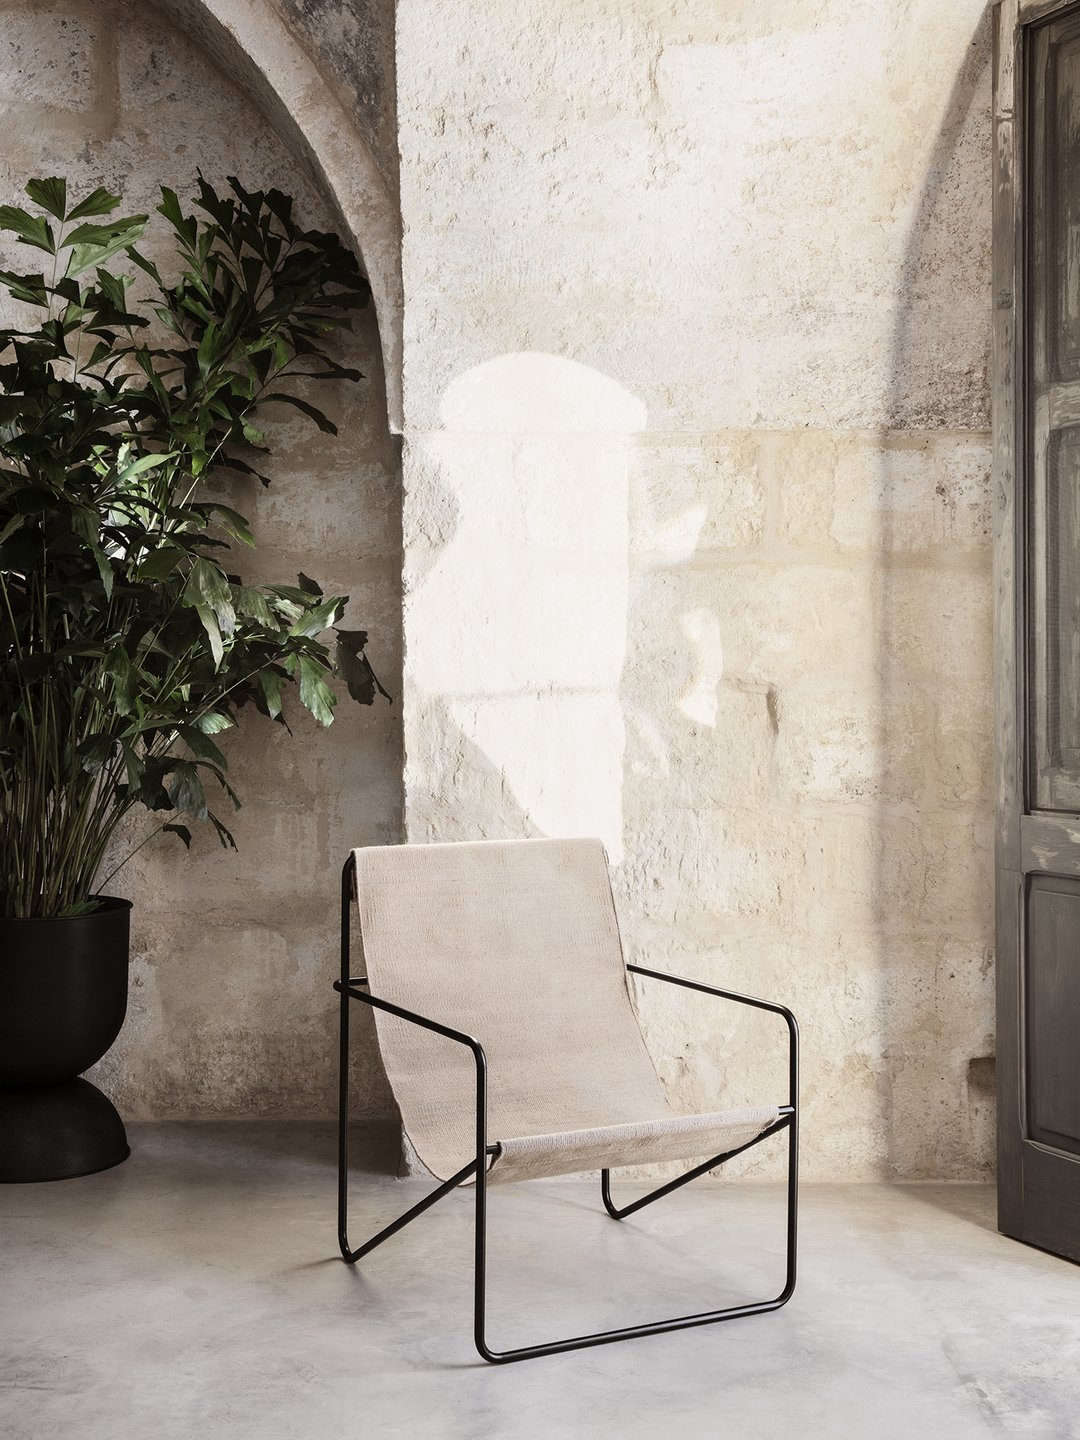 The Desert Lounge Chair with a Solid Cashmere Cover; $345 from Lekker Home.